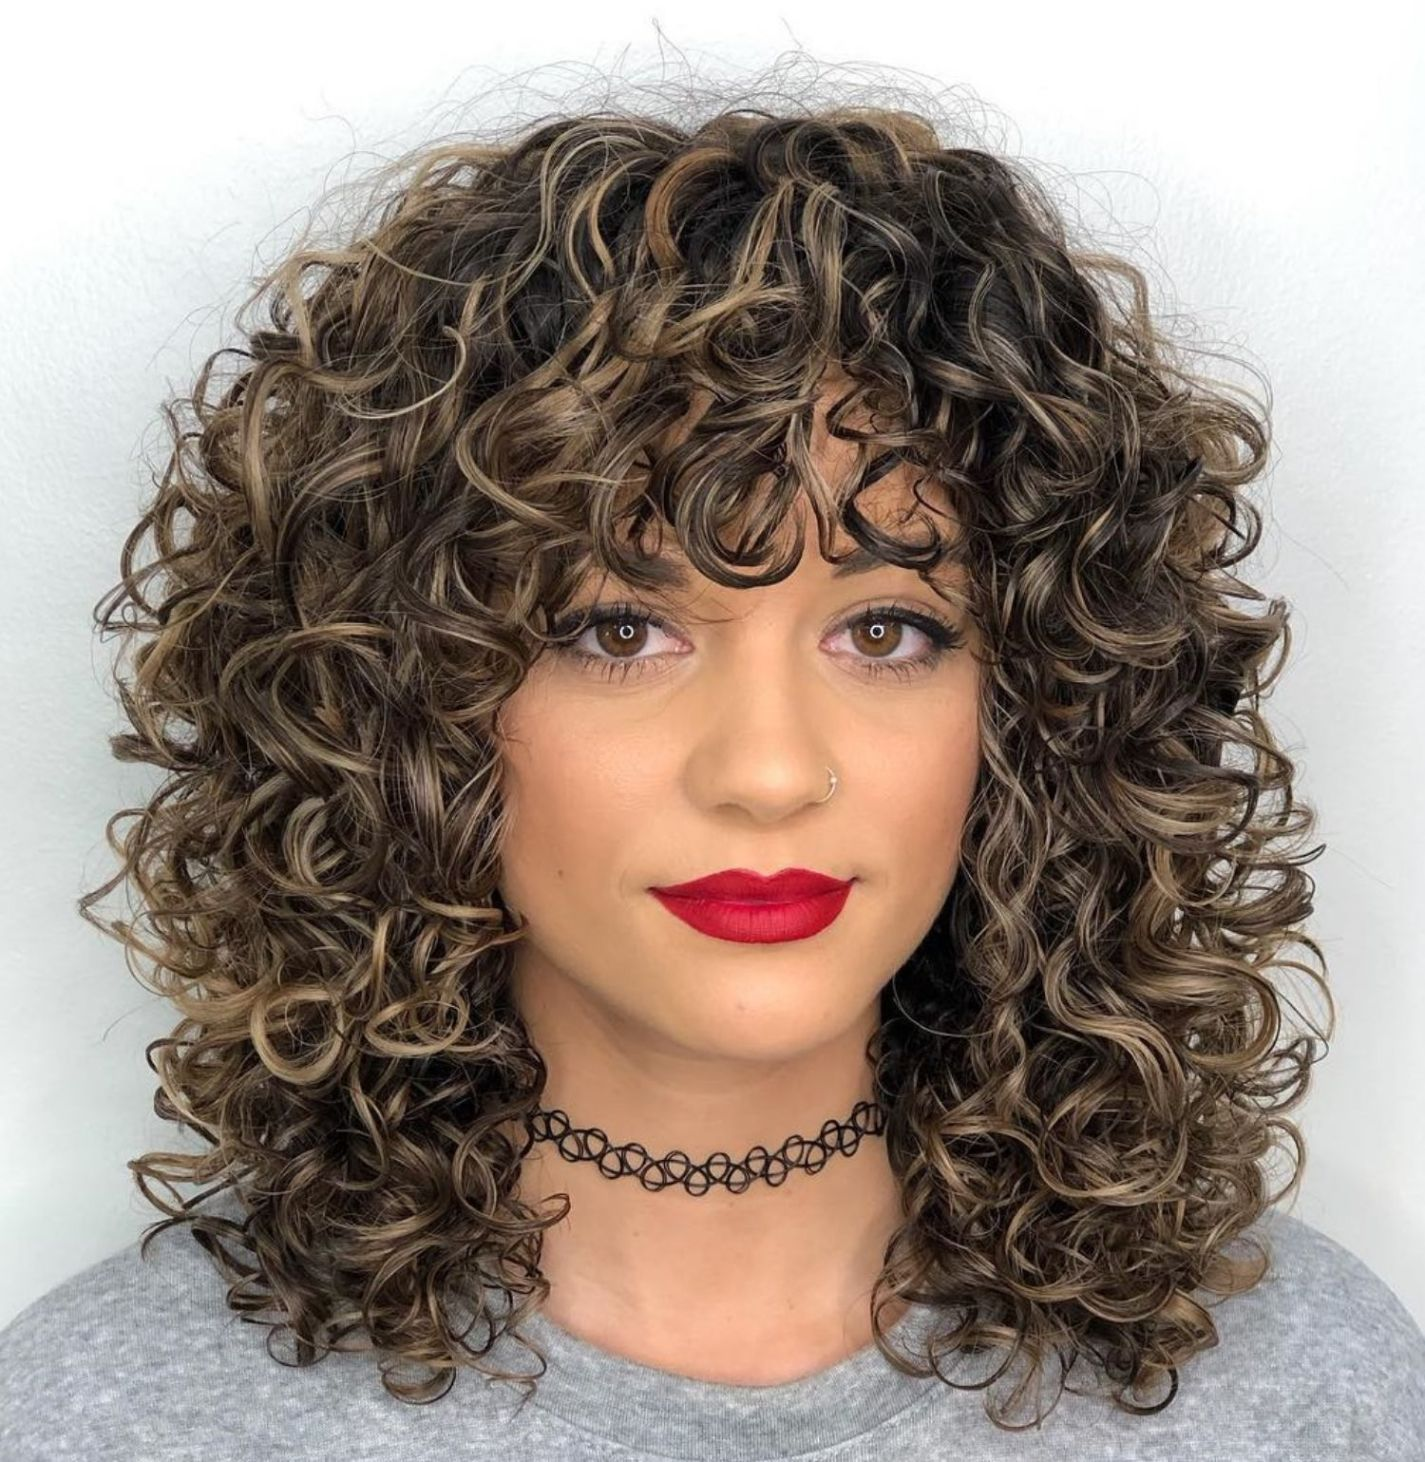 midlength curly hairstyle with curly bangs  curly hair